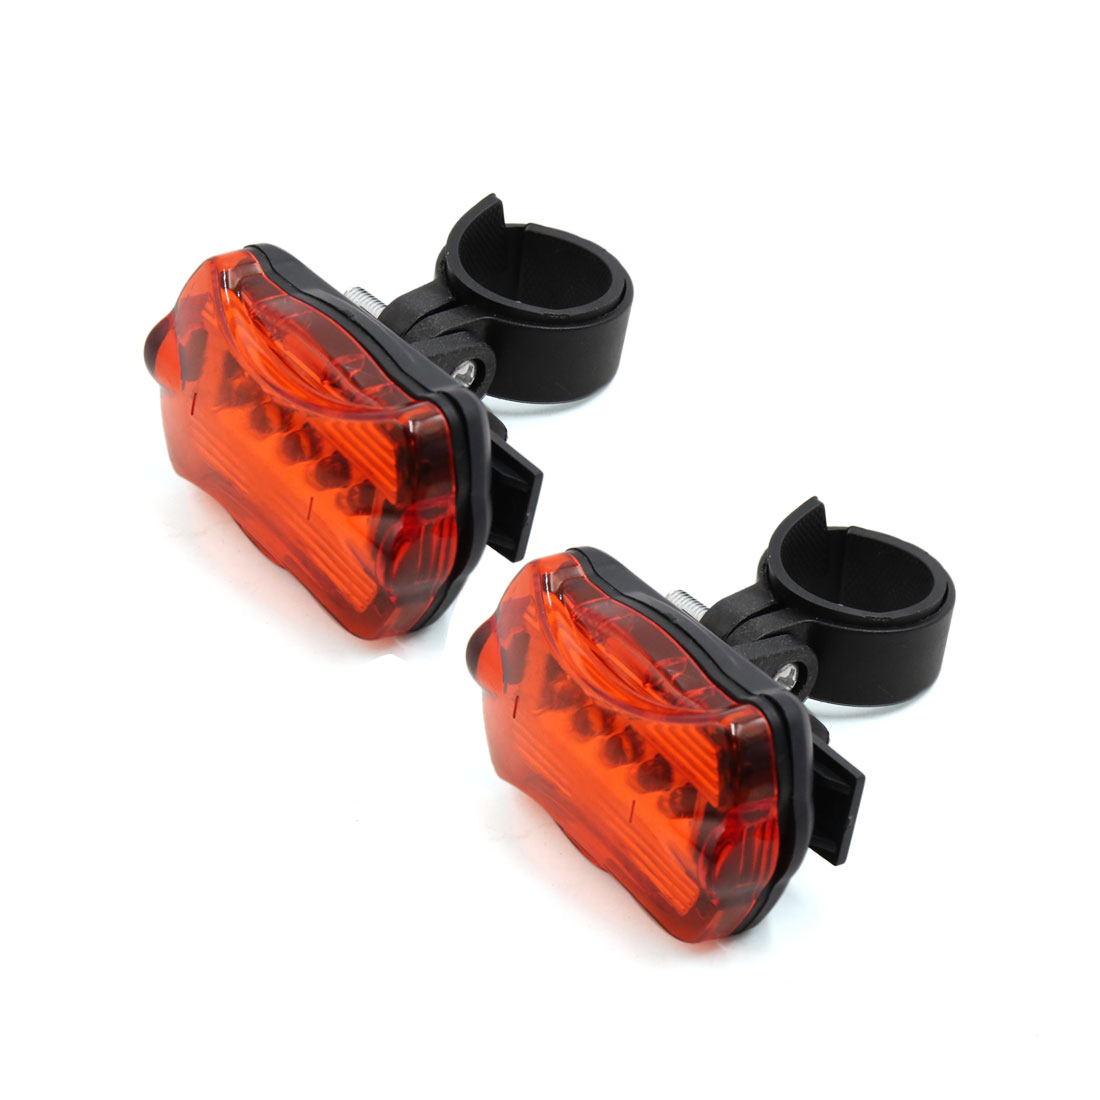 2 Pcs 7 Modes 5 Red LED Bike Bicycle Safety Rear Tail light Lamp w Bracket